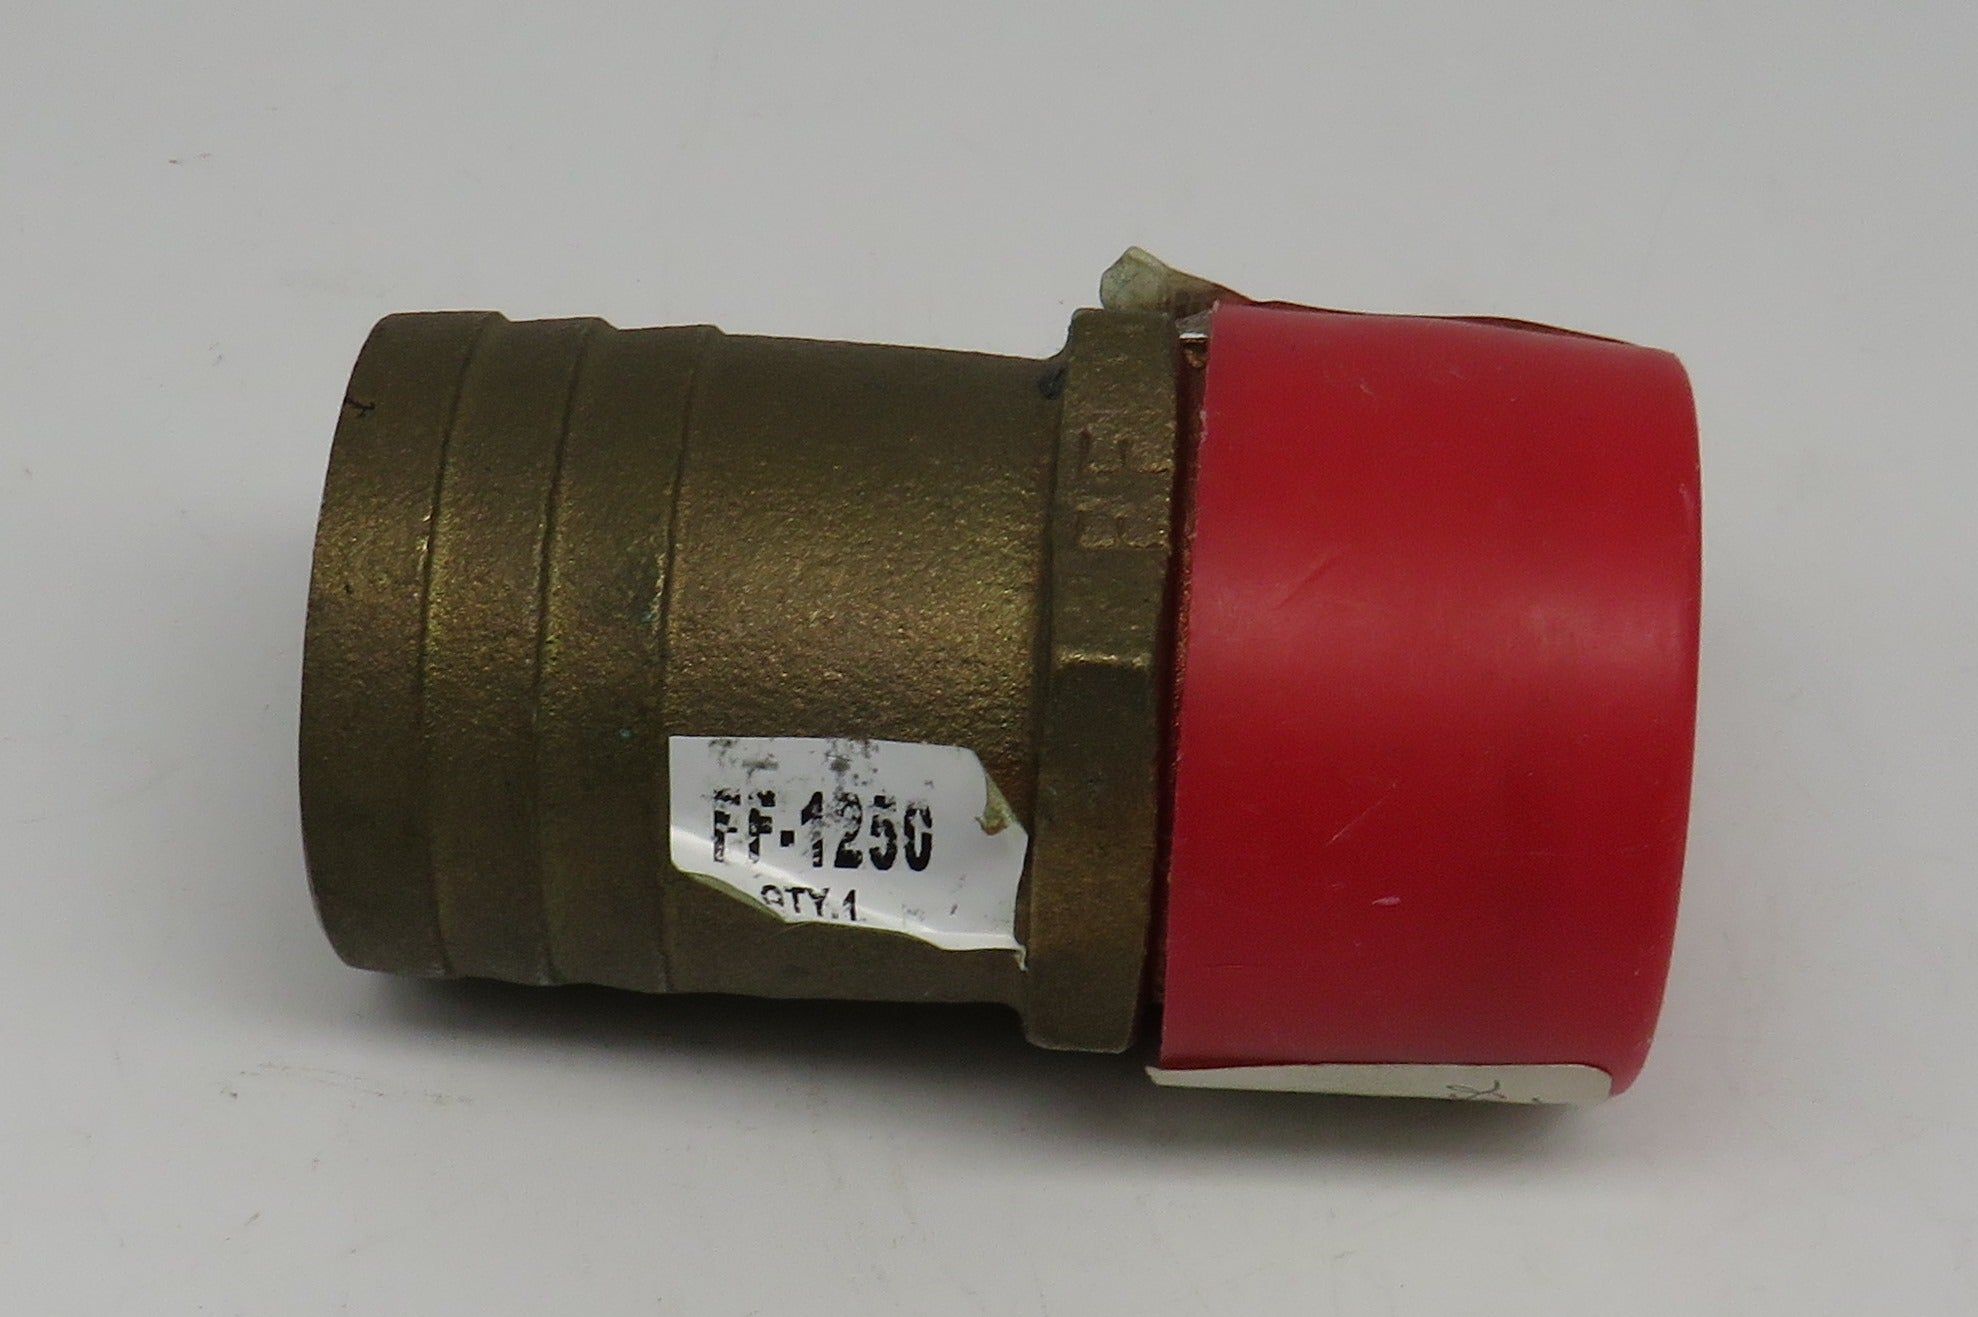 FF-1250 Groco Bronze Hose to Pipe Adapter 1-1/4